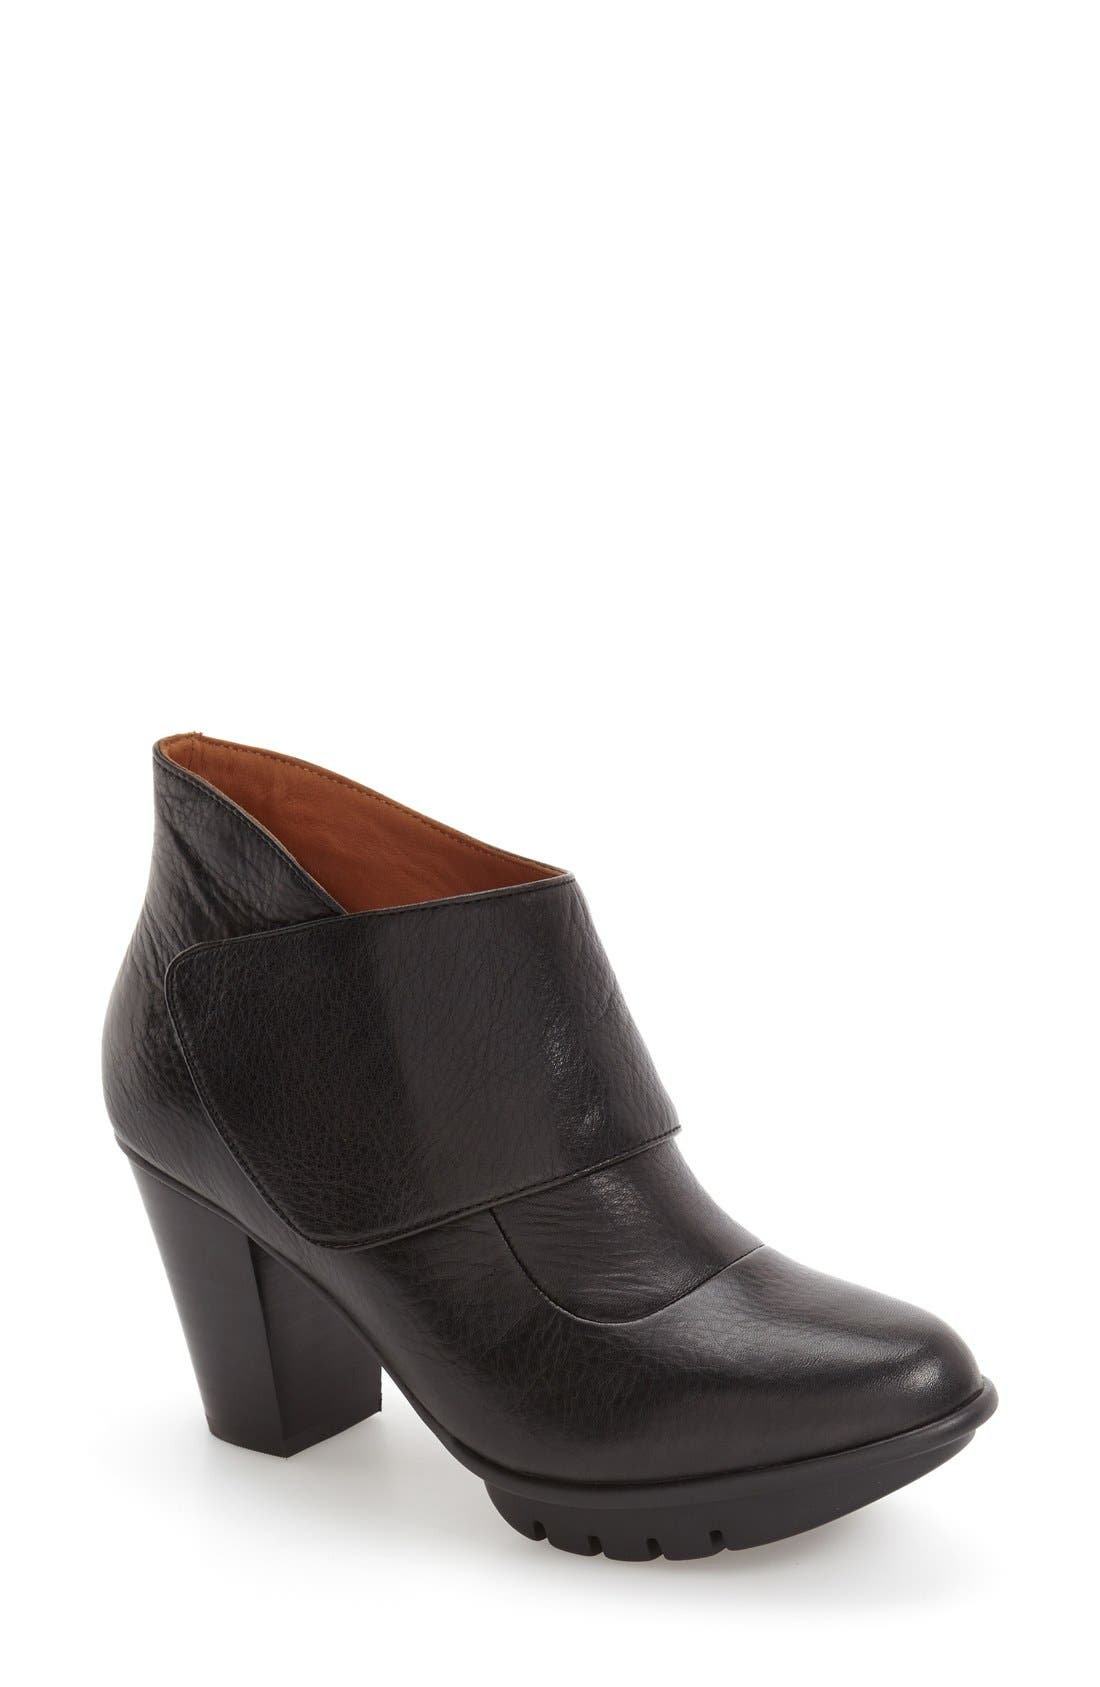 'Eviemae' Platform Bootie,                         Main,                         color, 001